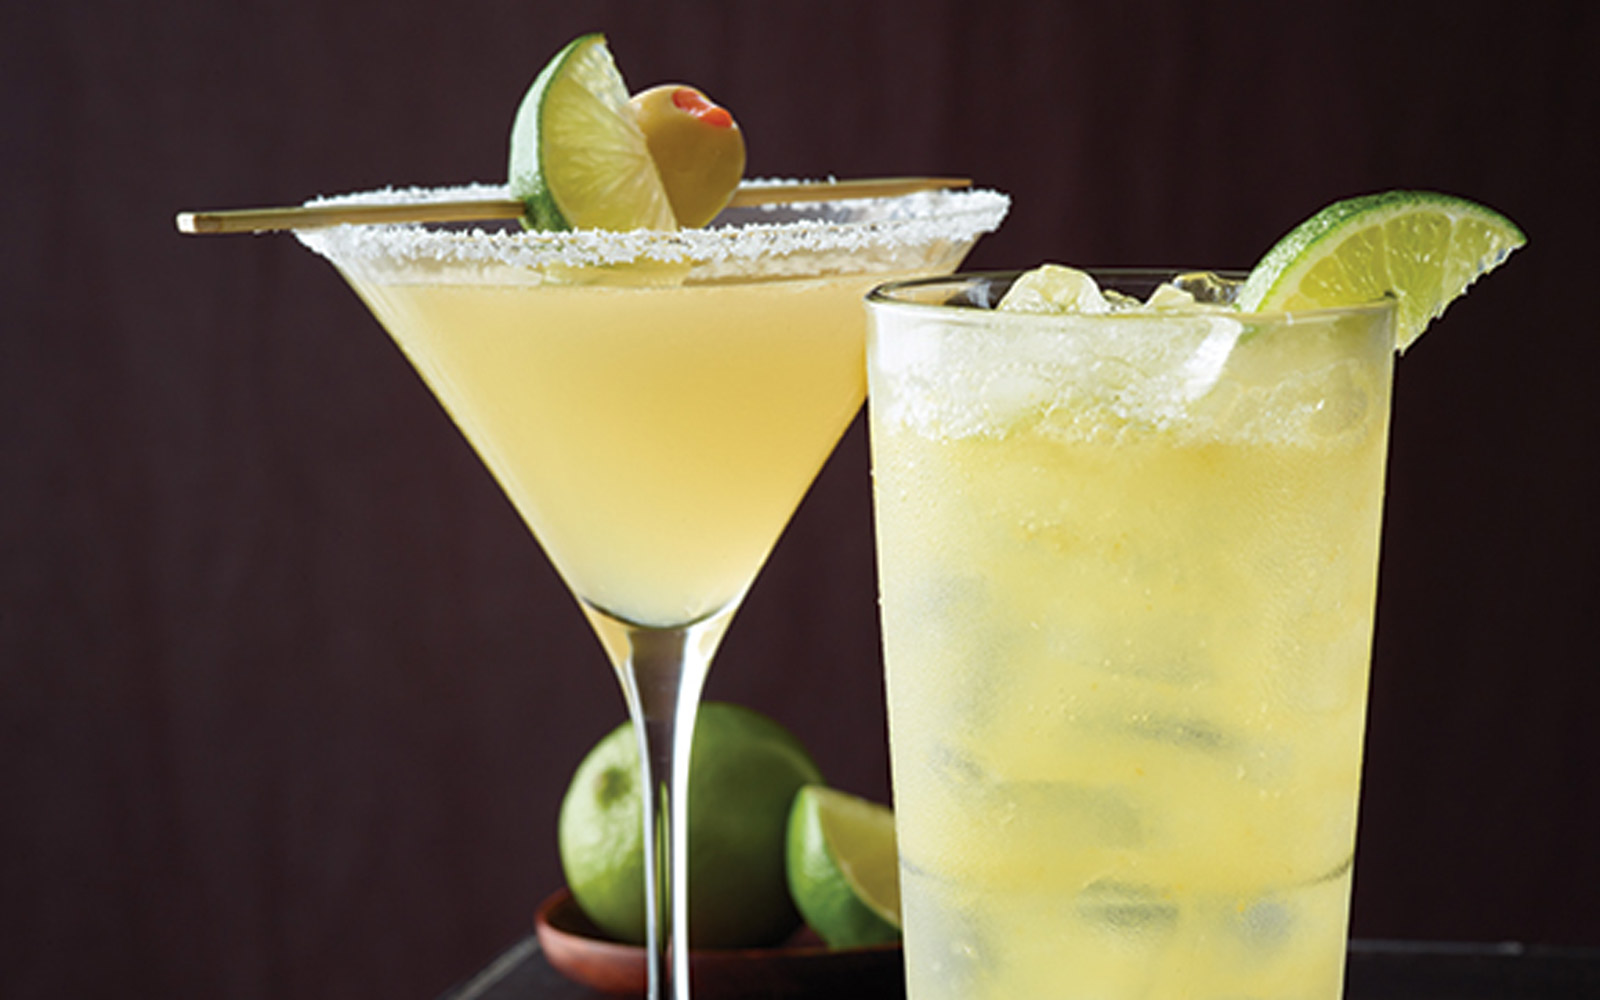 Applebee's Perfect Margarita